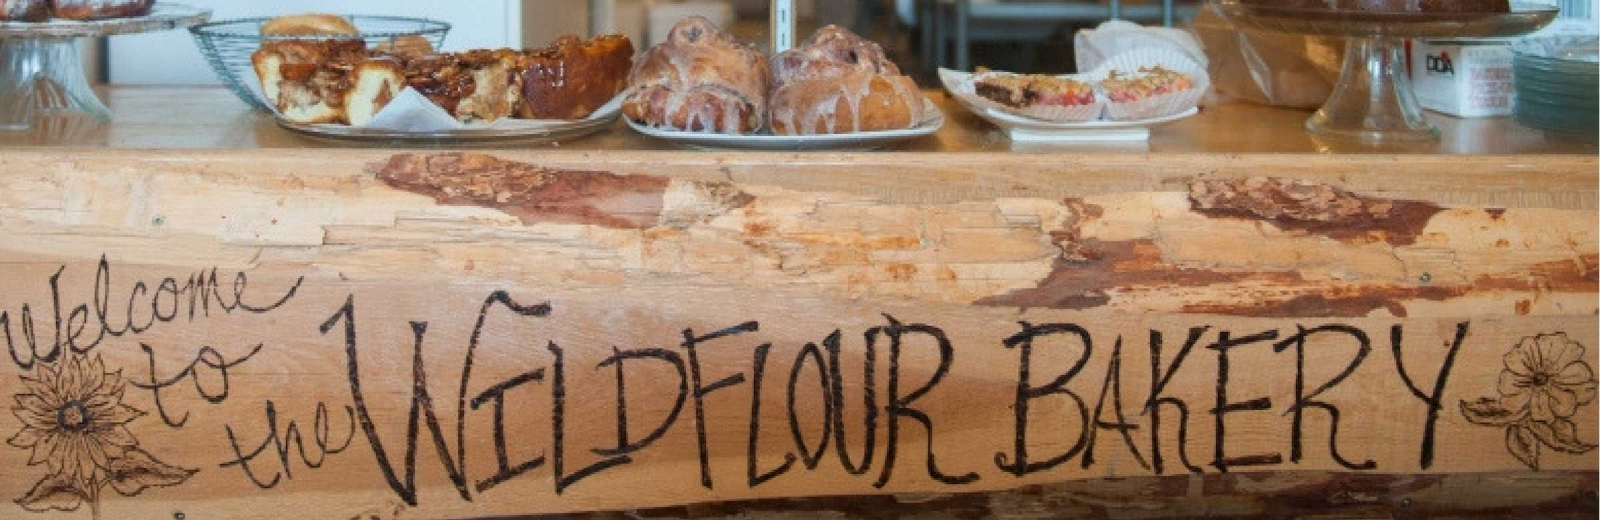 Wildflour Bakery and Cafe